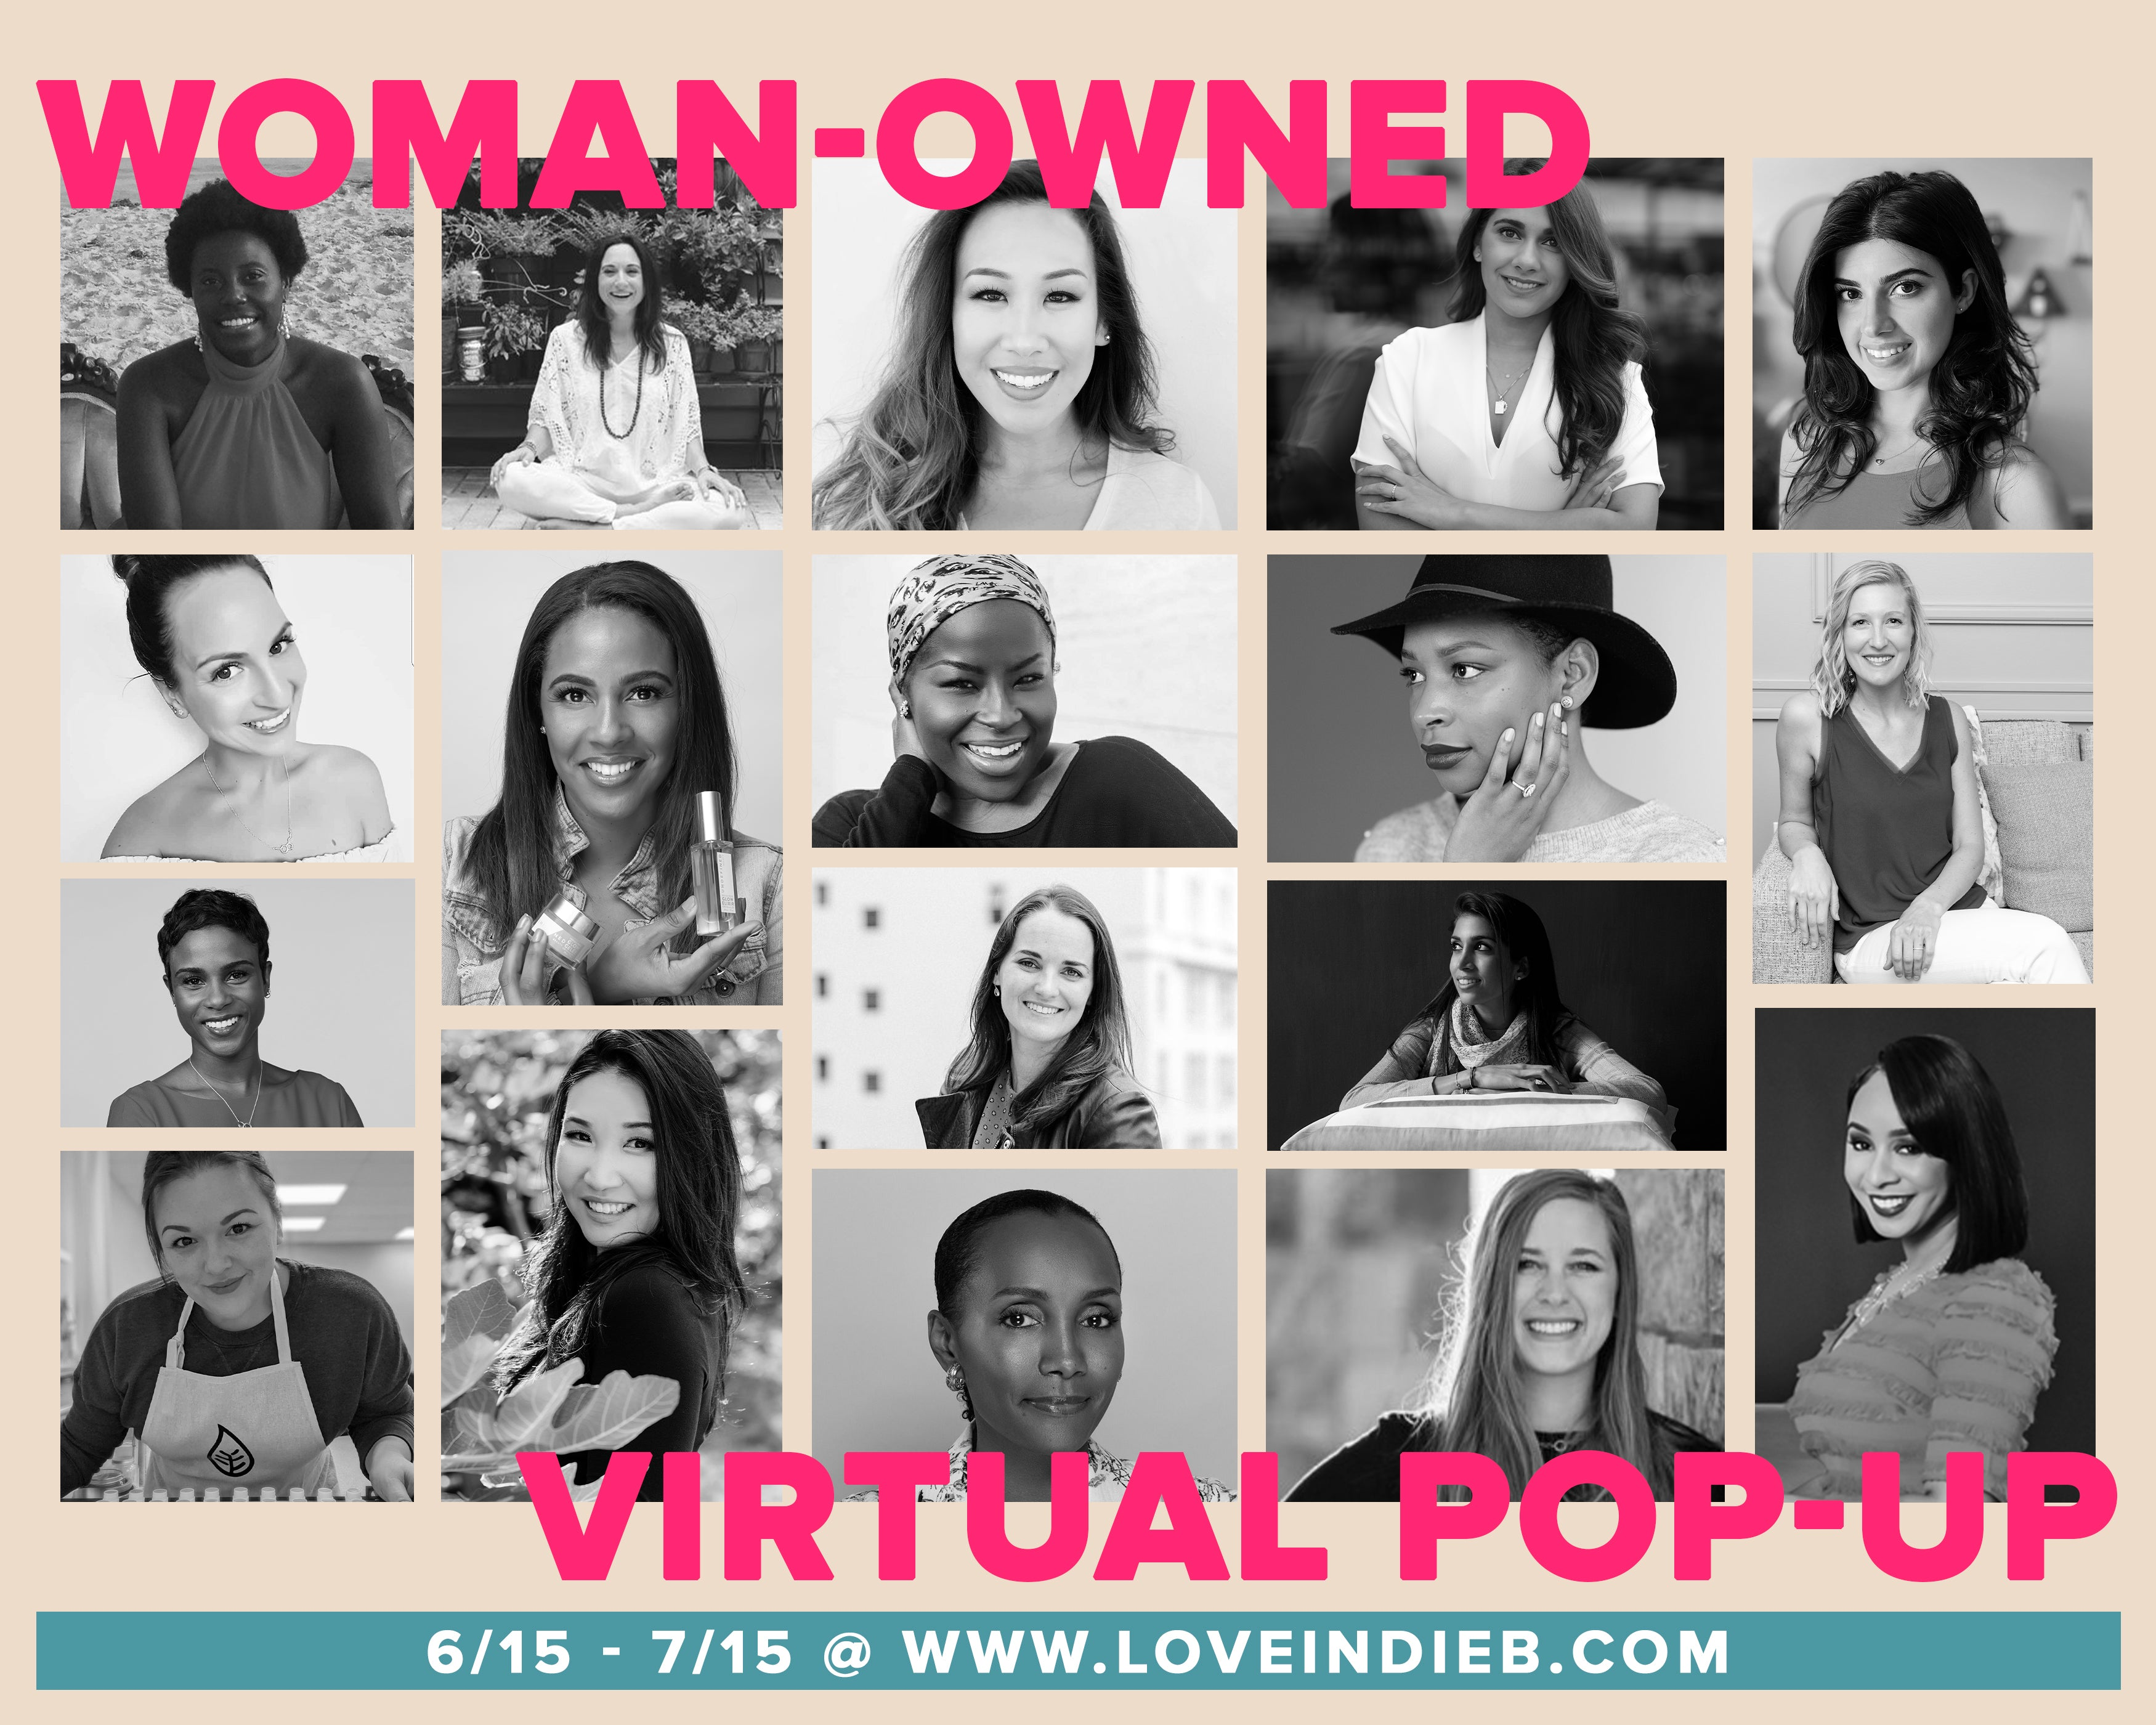 graphic with women's photos